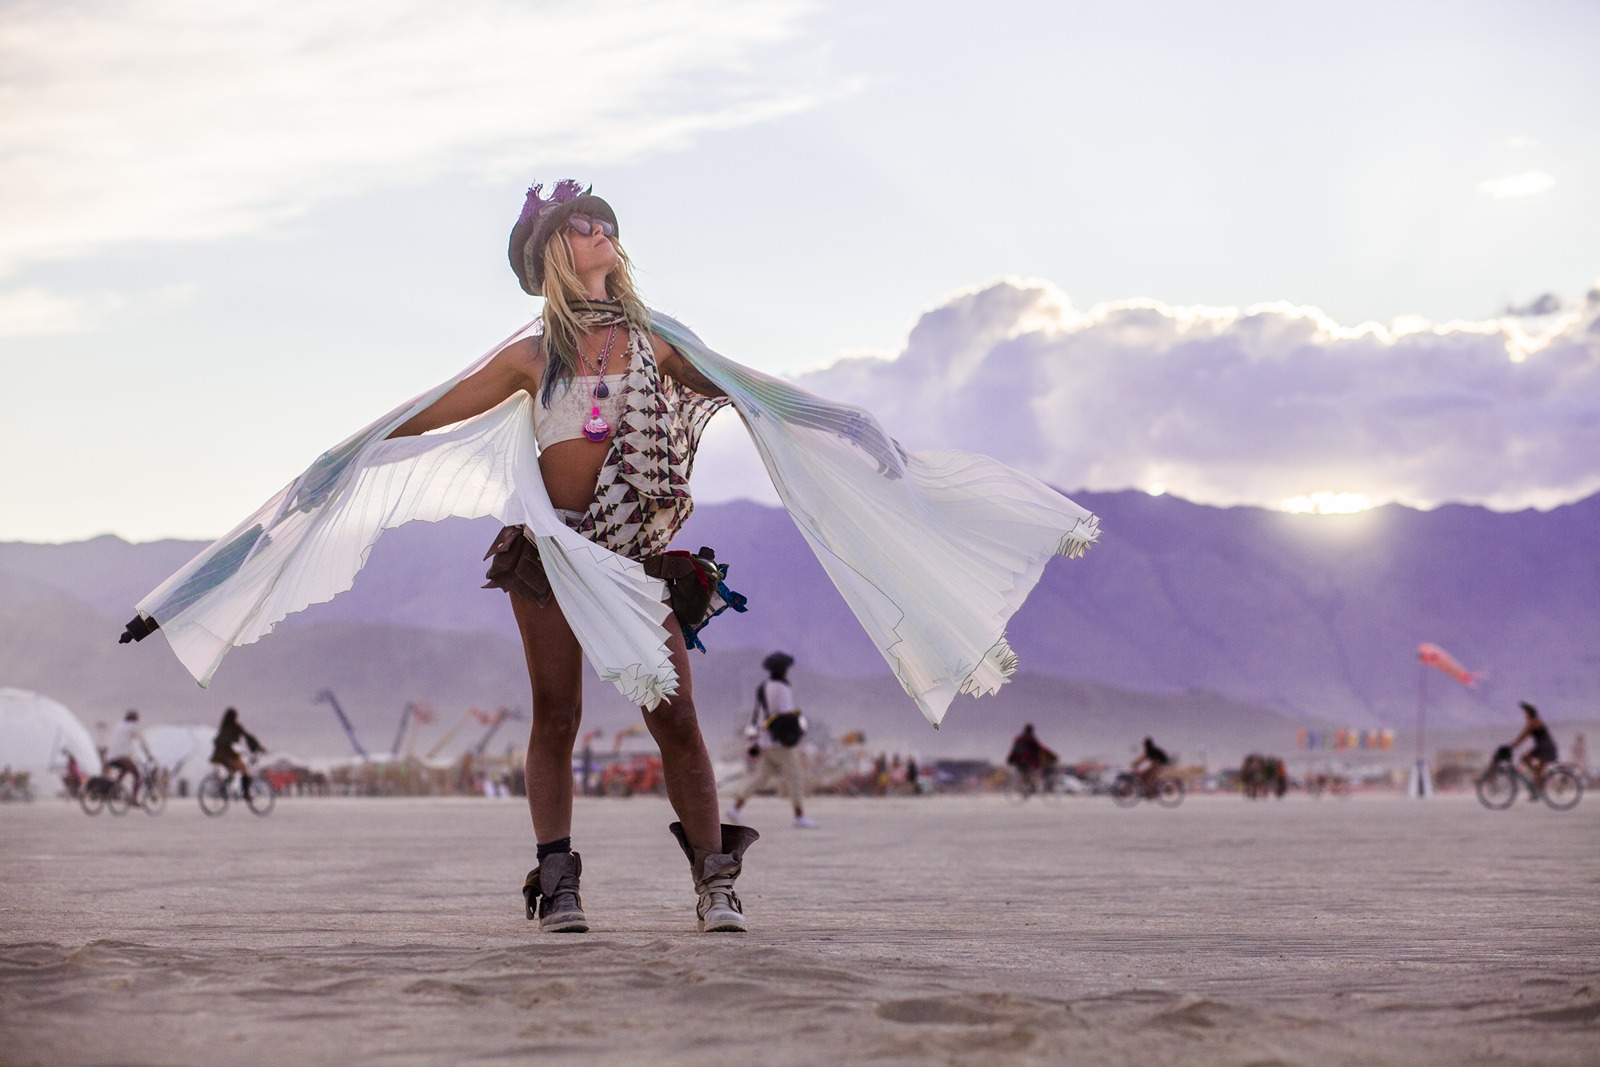 Burning Man - Burner on the playa